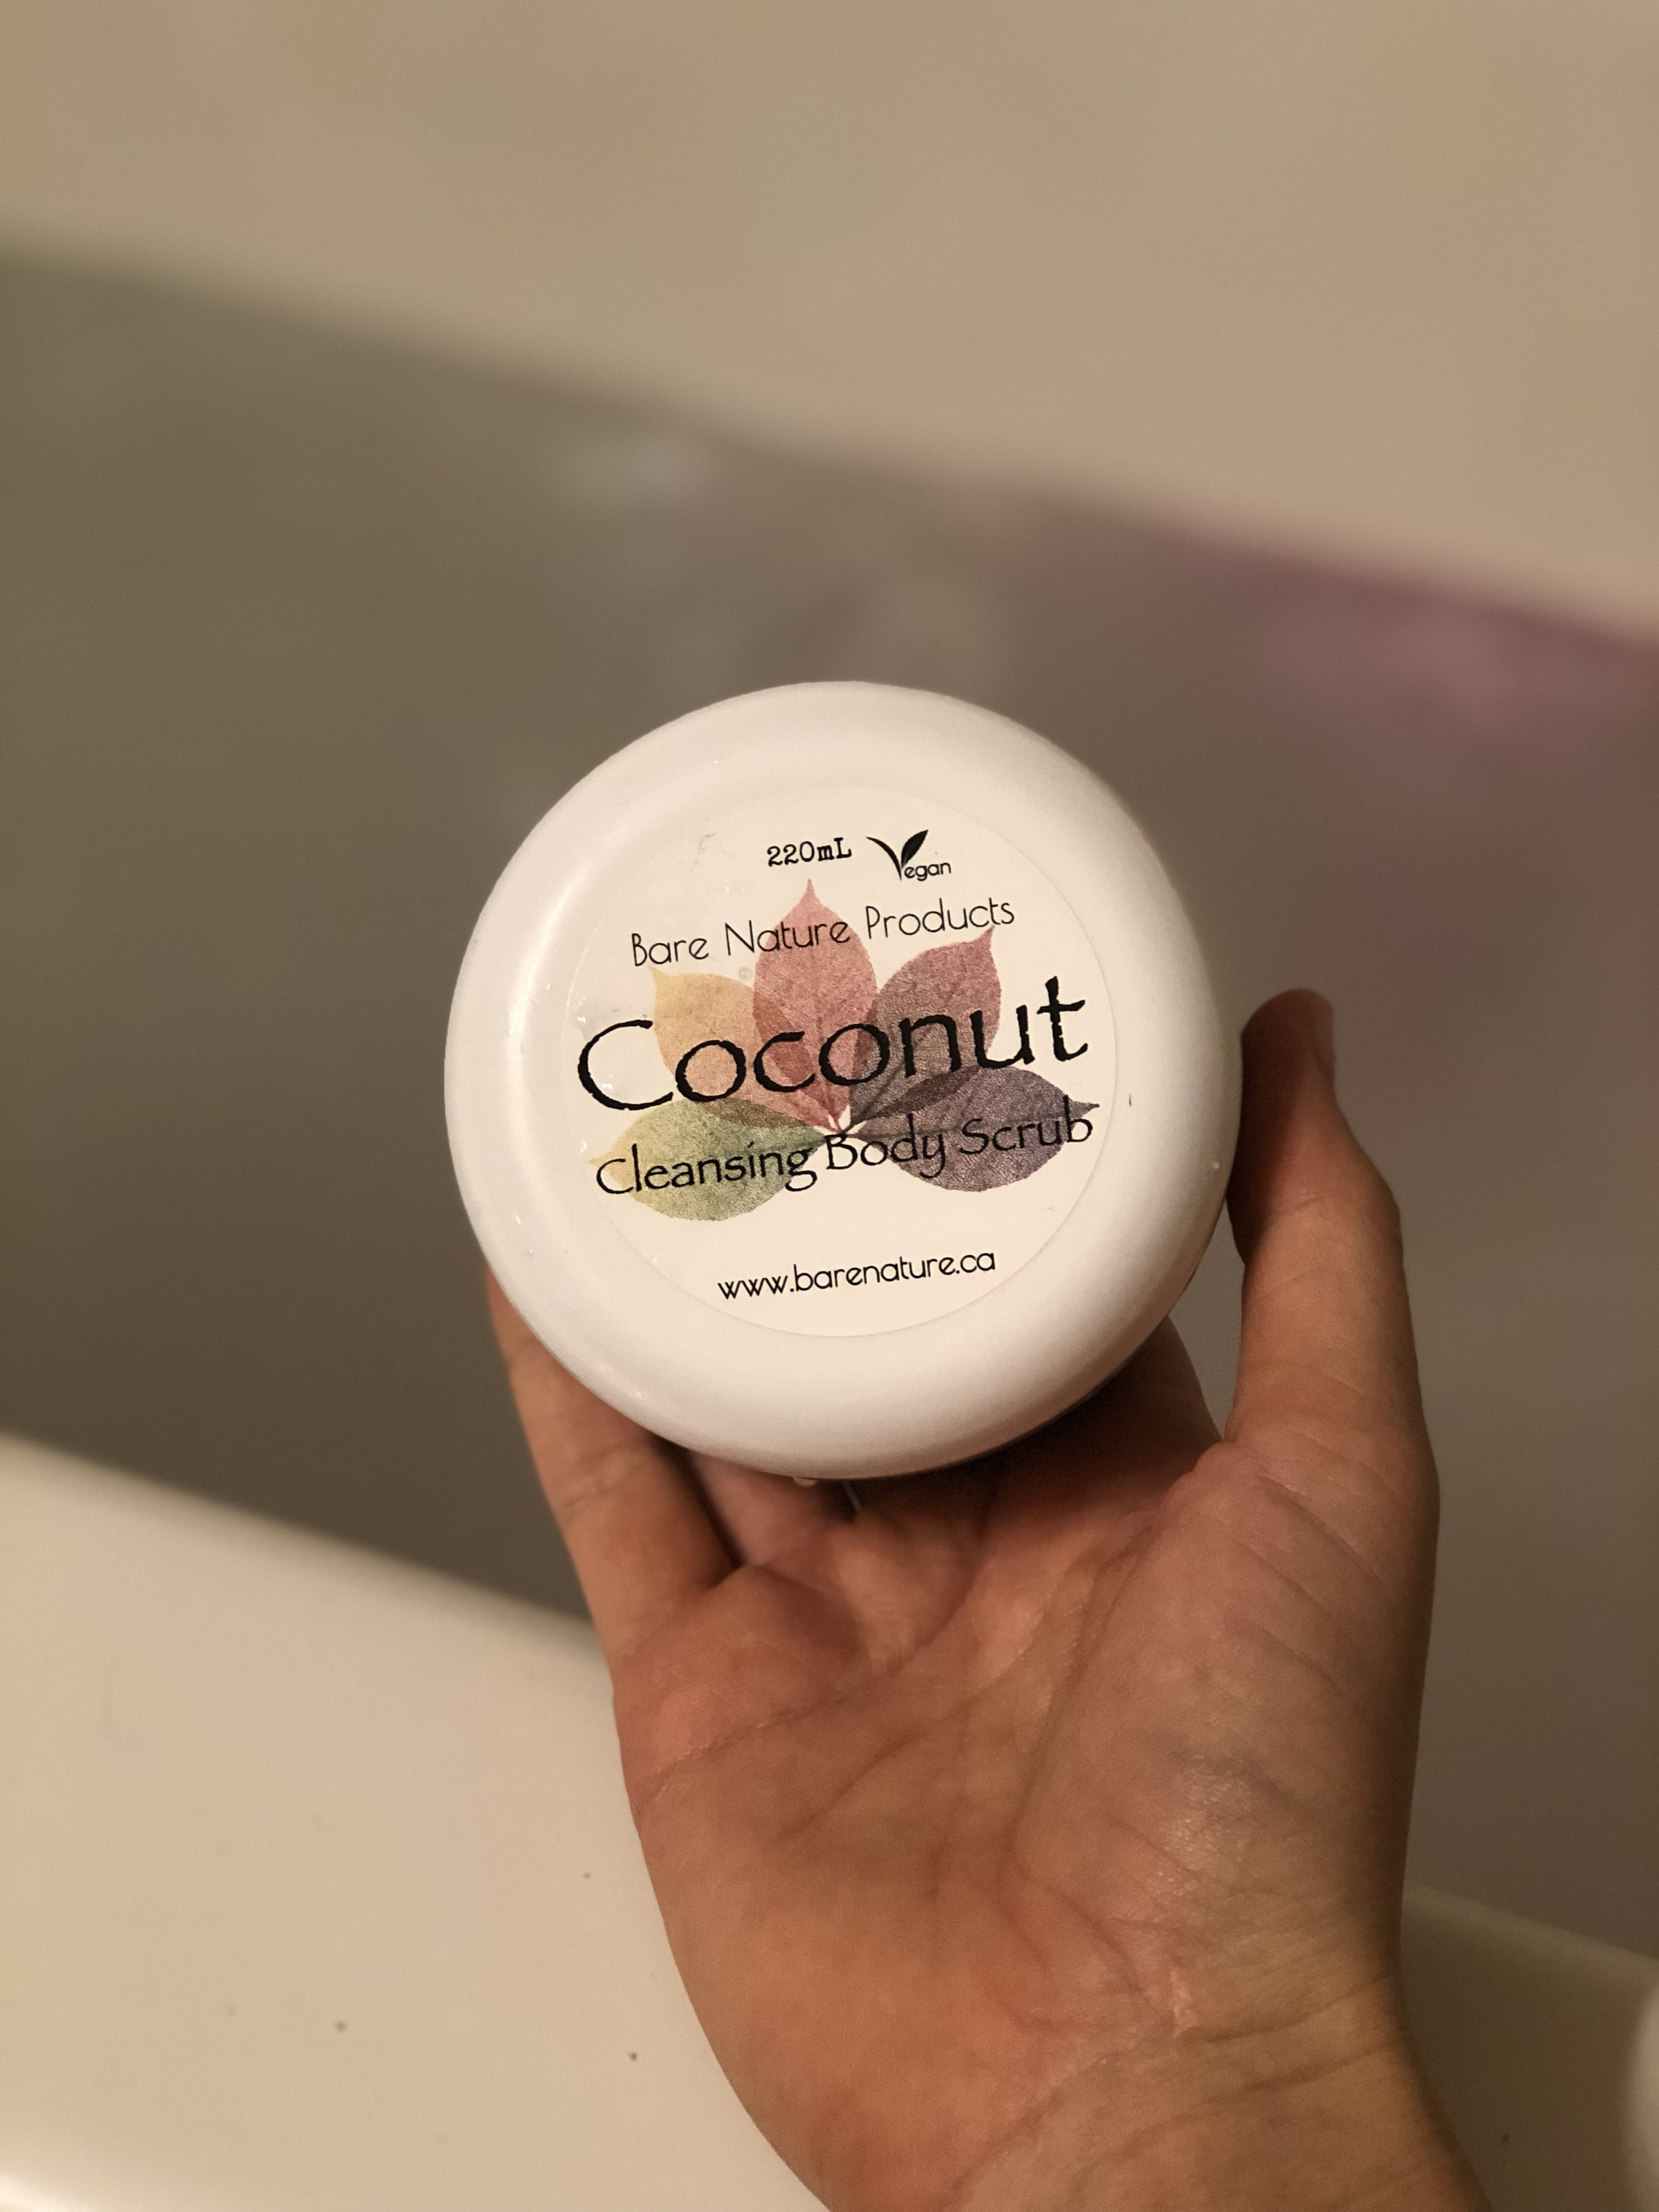 this is my #1 go-to scrub right now from Bare Nature Products. I met the girl who makes and sells these all natural products at the Okanagan Yoga Festival this summer in Osoyoos and I was stoked to try it out, it's been AMAZING. You can find her on instagram or at the Farmers Market!